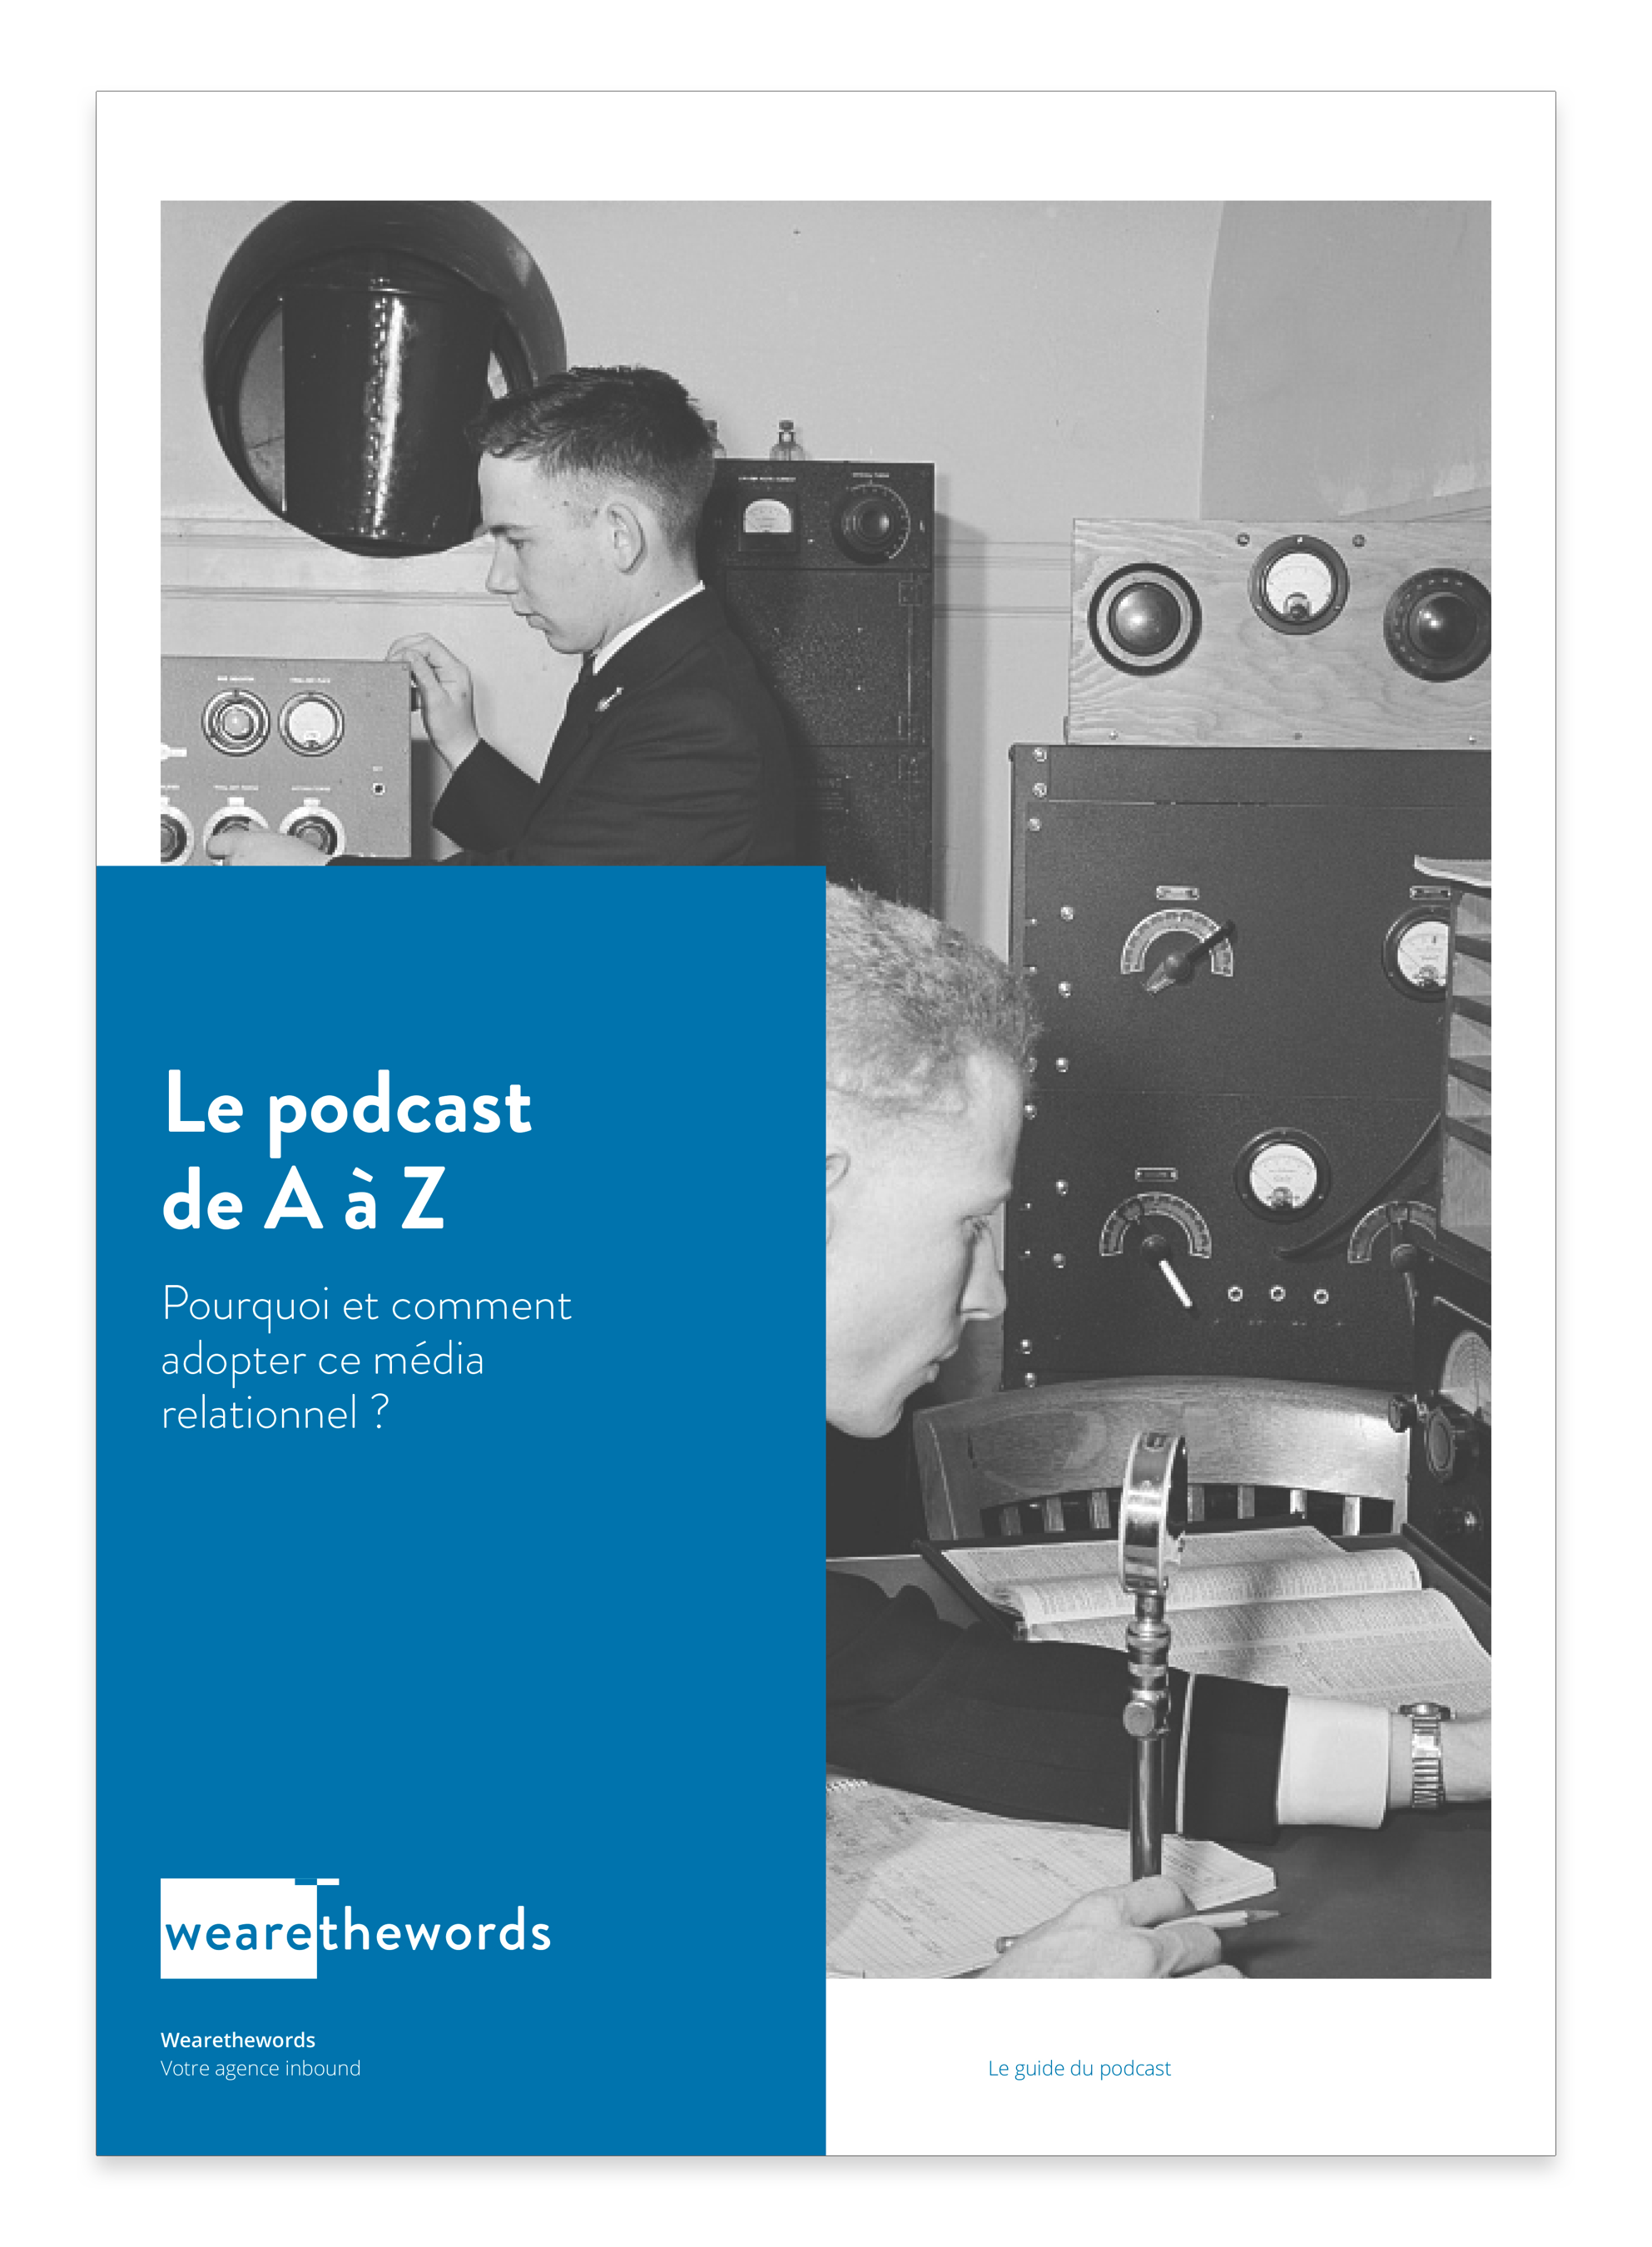 Le podcast, de A à Z - Pourquoi et comment adopter ce média relationnel ?